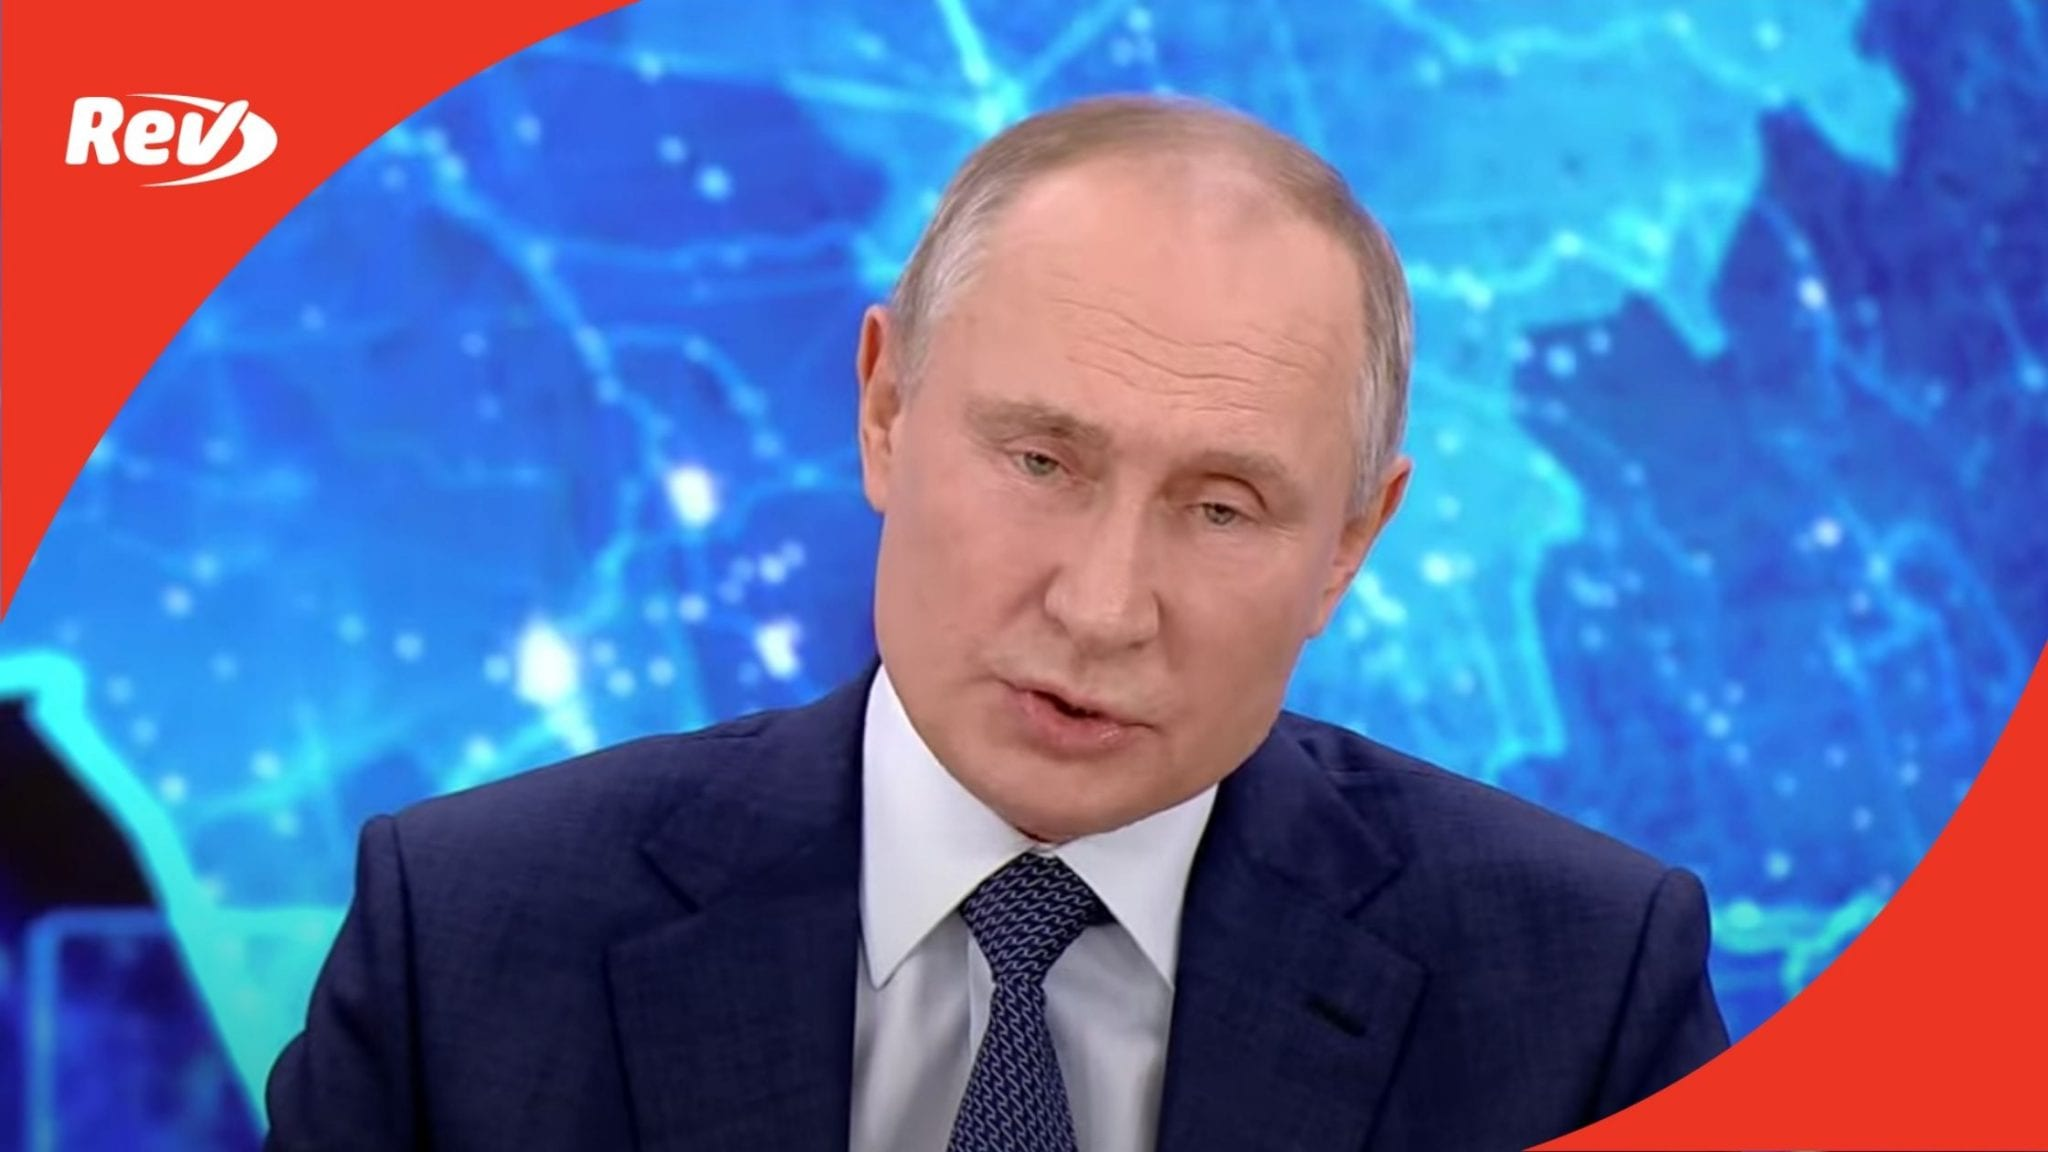 Vladimir Putin Annual News Conference in Moscow 2020